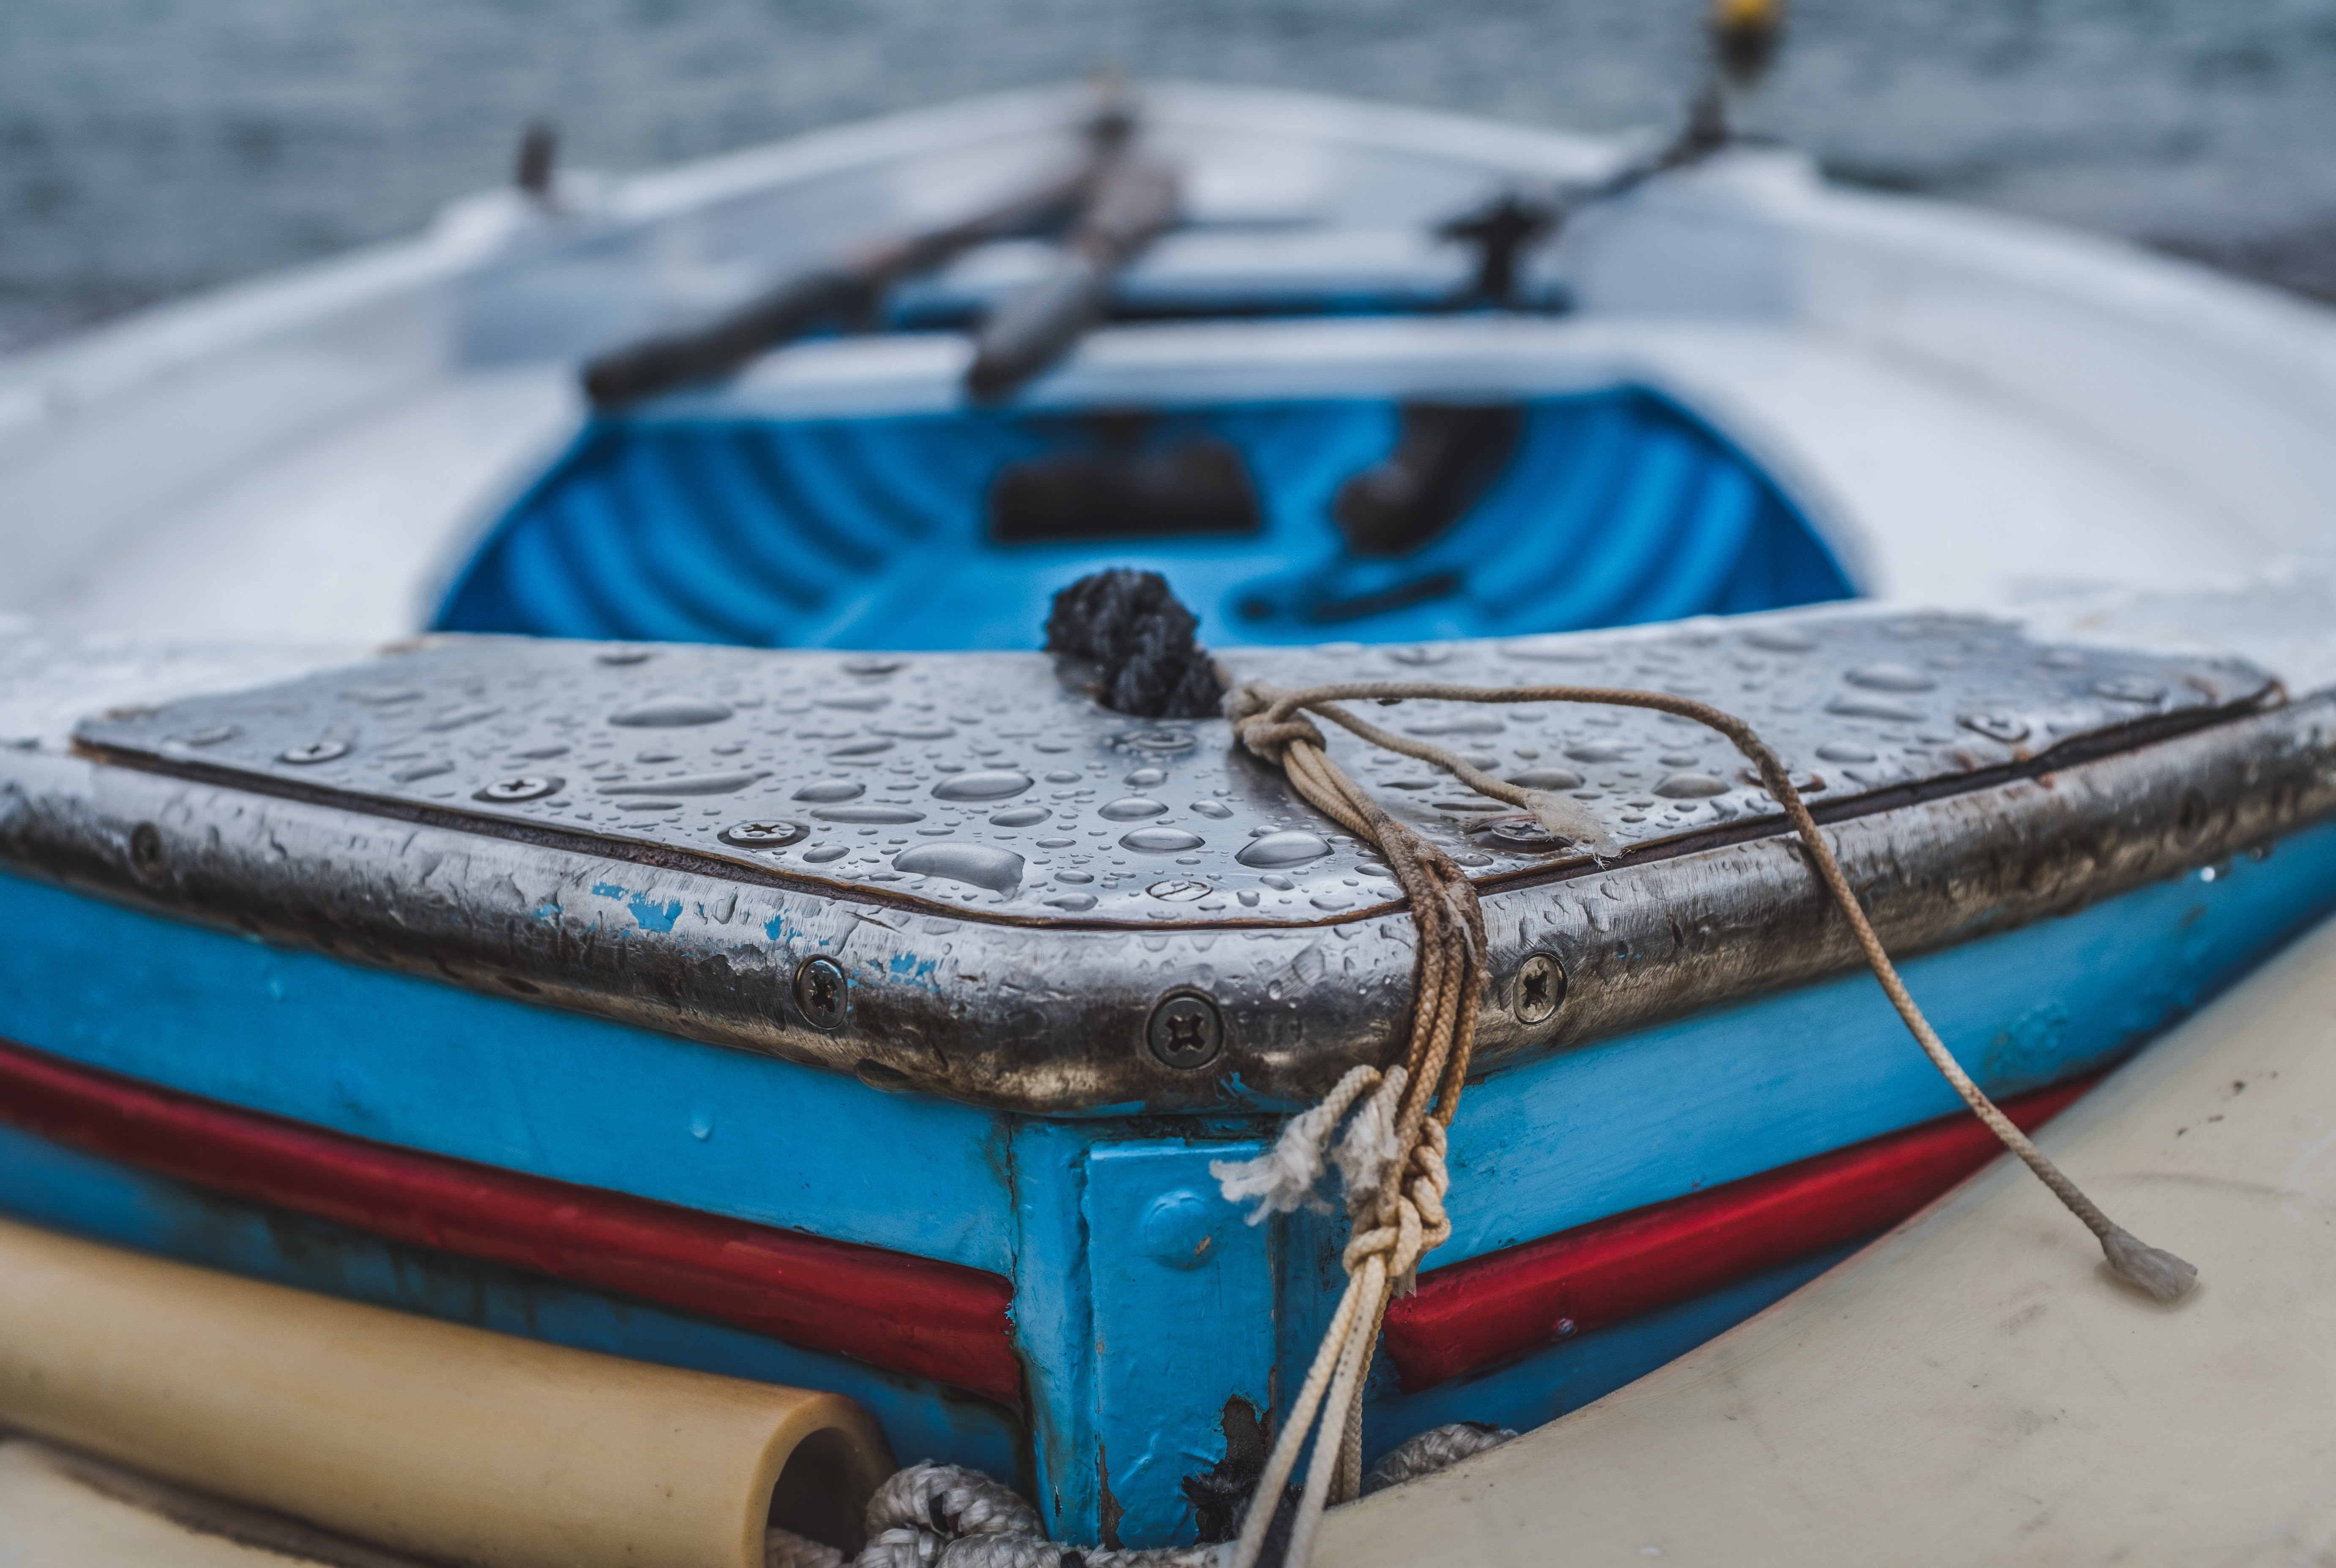 close up photography of boat with water drops